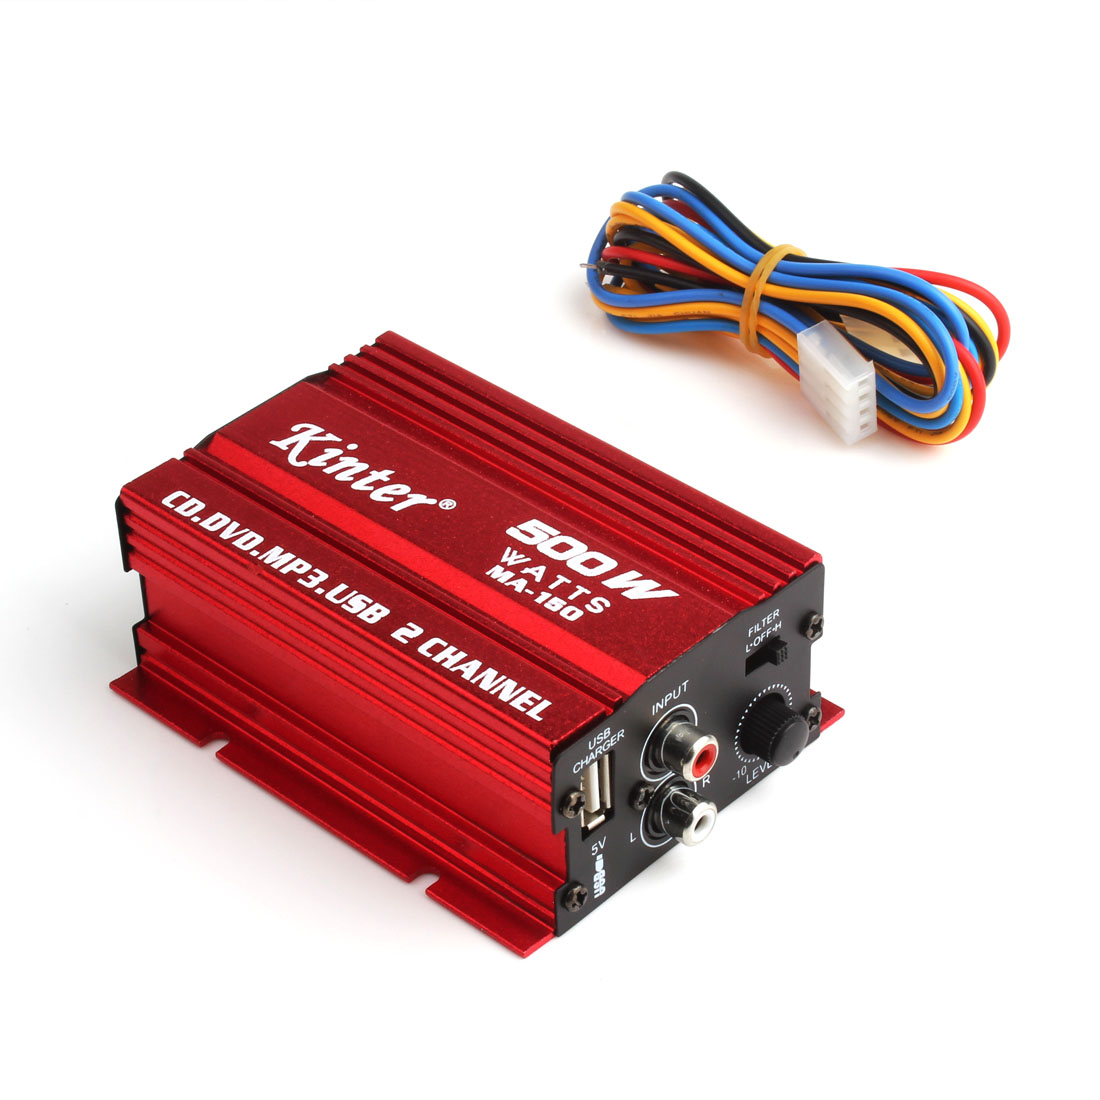 Mini-Hi-Fi-500W-2-Channel-Stereo-Audio-Amplifier-For-Car-Motorcycle-Home-New thumbnail 6